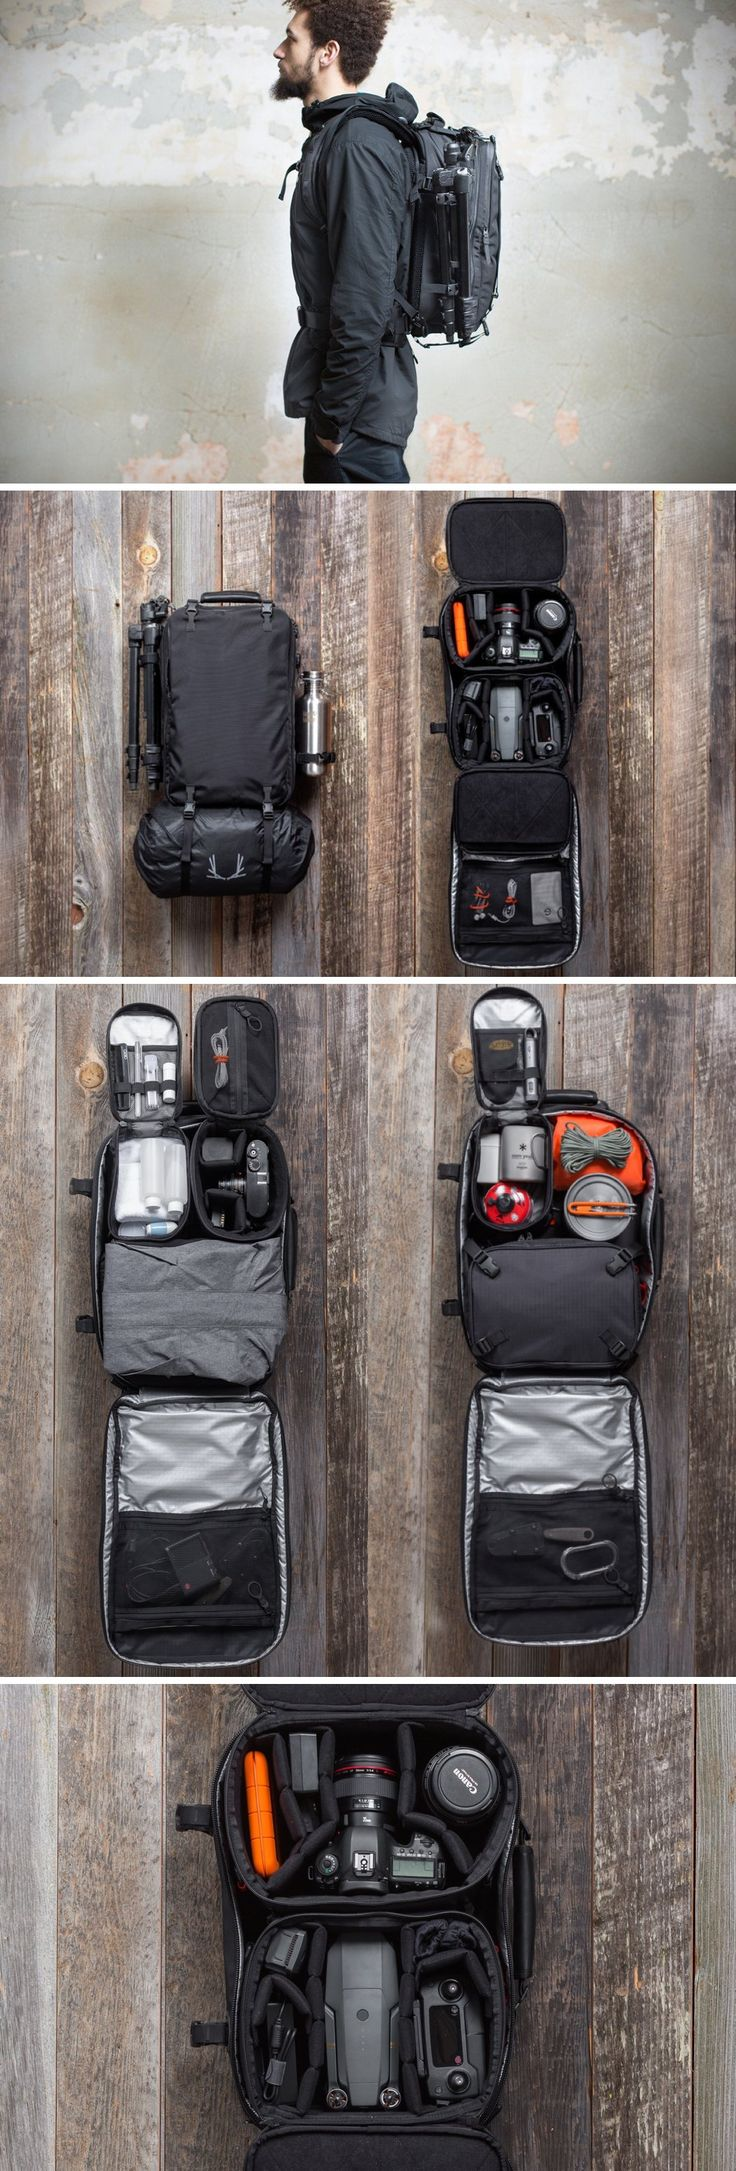 The modular V4 backpack by Black Ember allows you to carry any and everything related to travel, adventure, and photography in a format that is of use to you! The secret to the V4's inherent awesomeness is intelligent compartmentalization. The bag comes with compartments that lock right to the bag's secure inner wall using magnetic locks. Individual compartment cubes (made for separate uses and needs) can easily be customized within the bag, allowing you to carry more or less equipment.